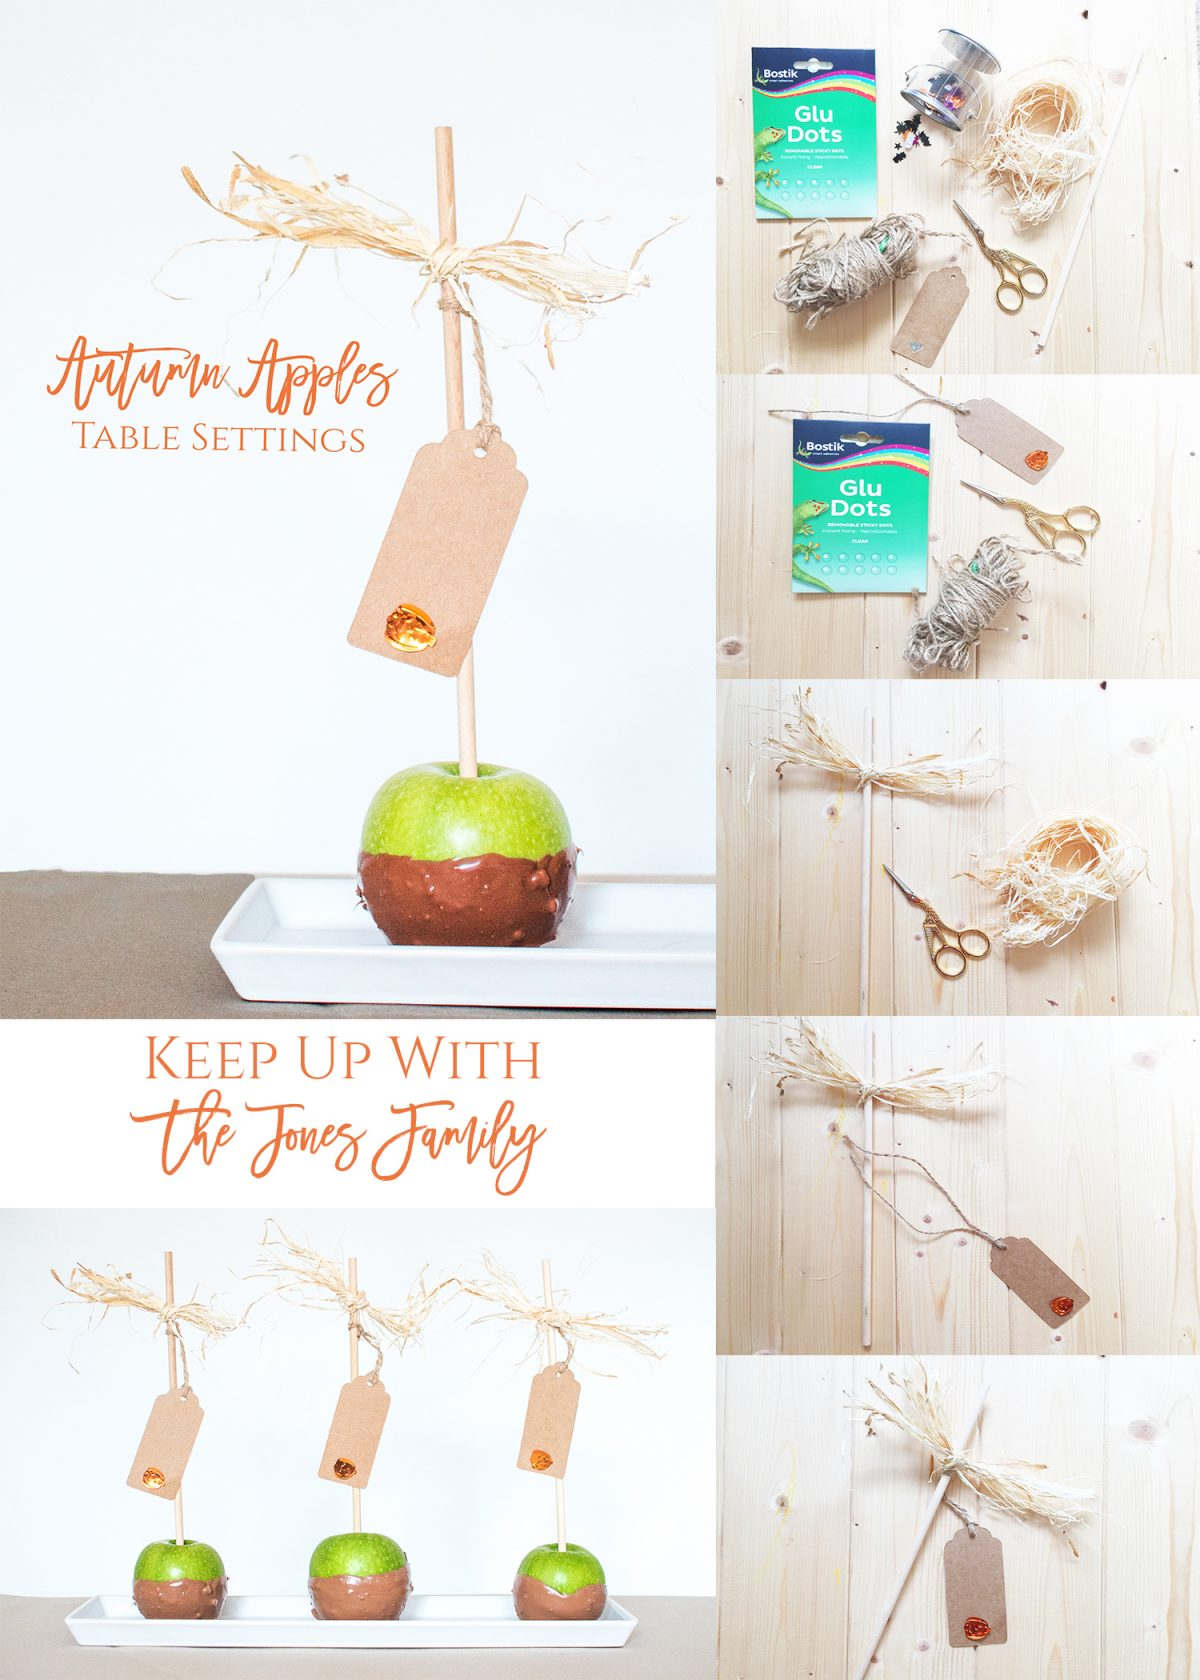 Autumn Apples Table Settings bostik bloggers